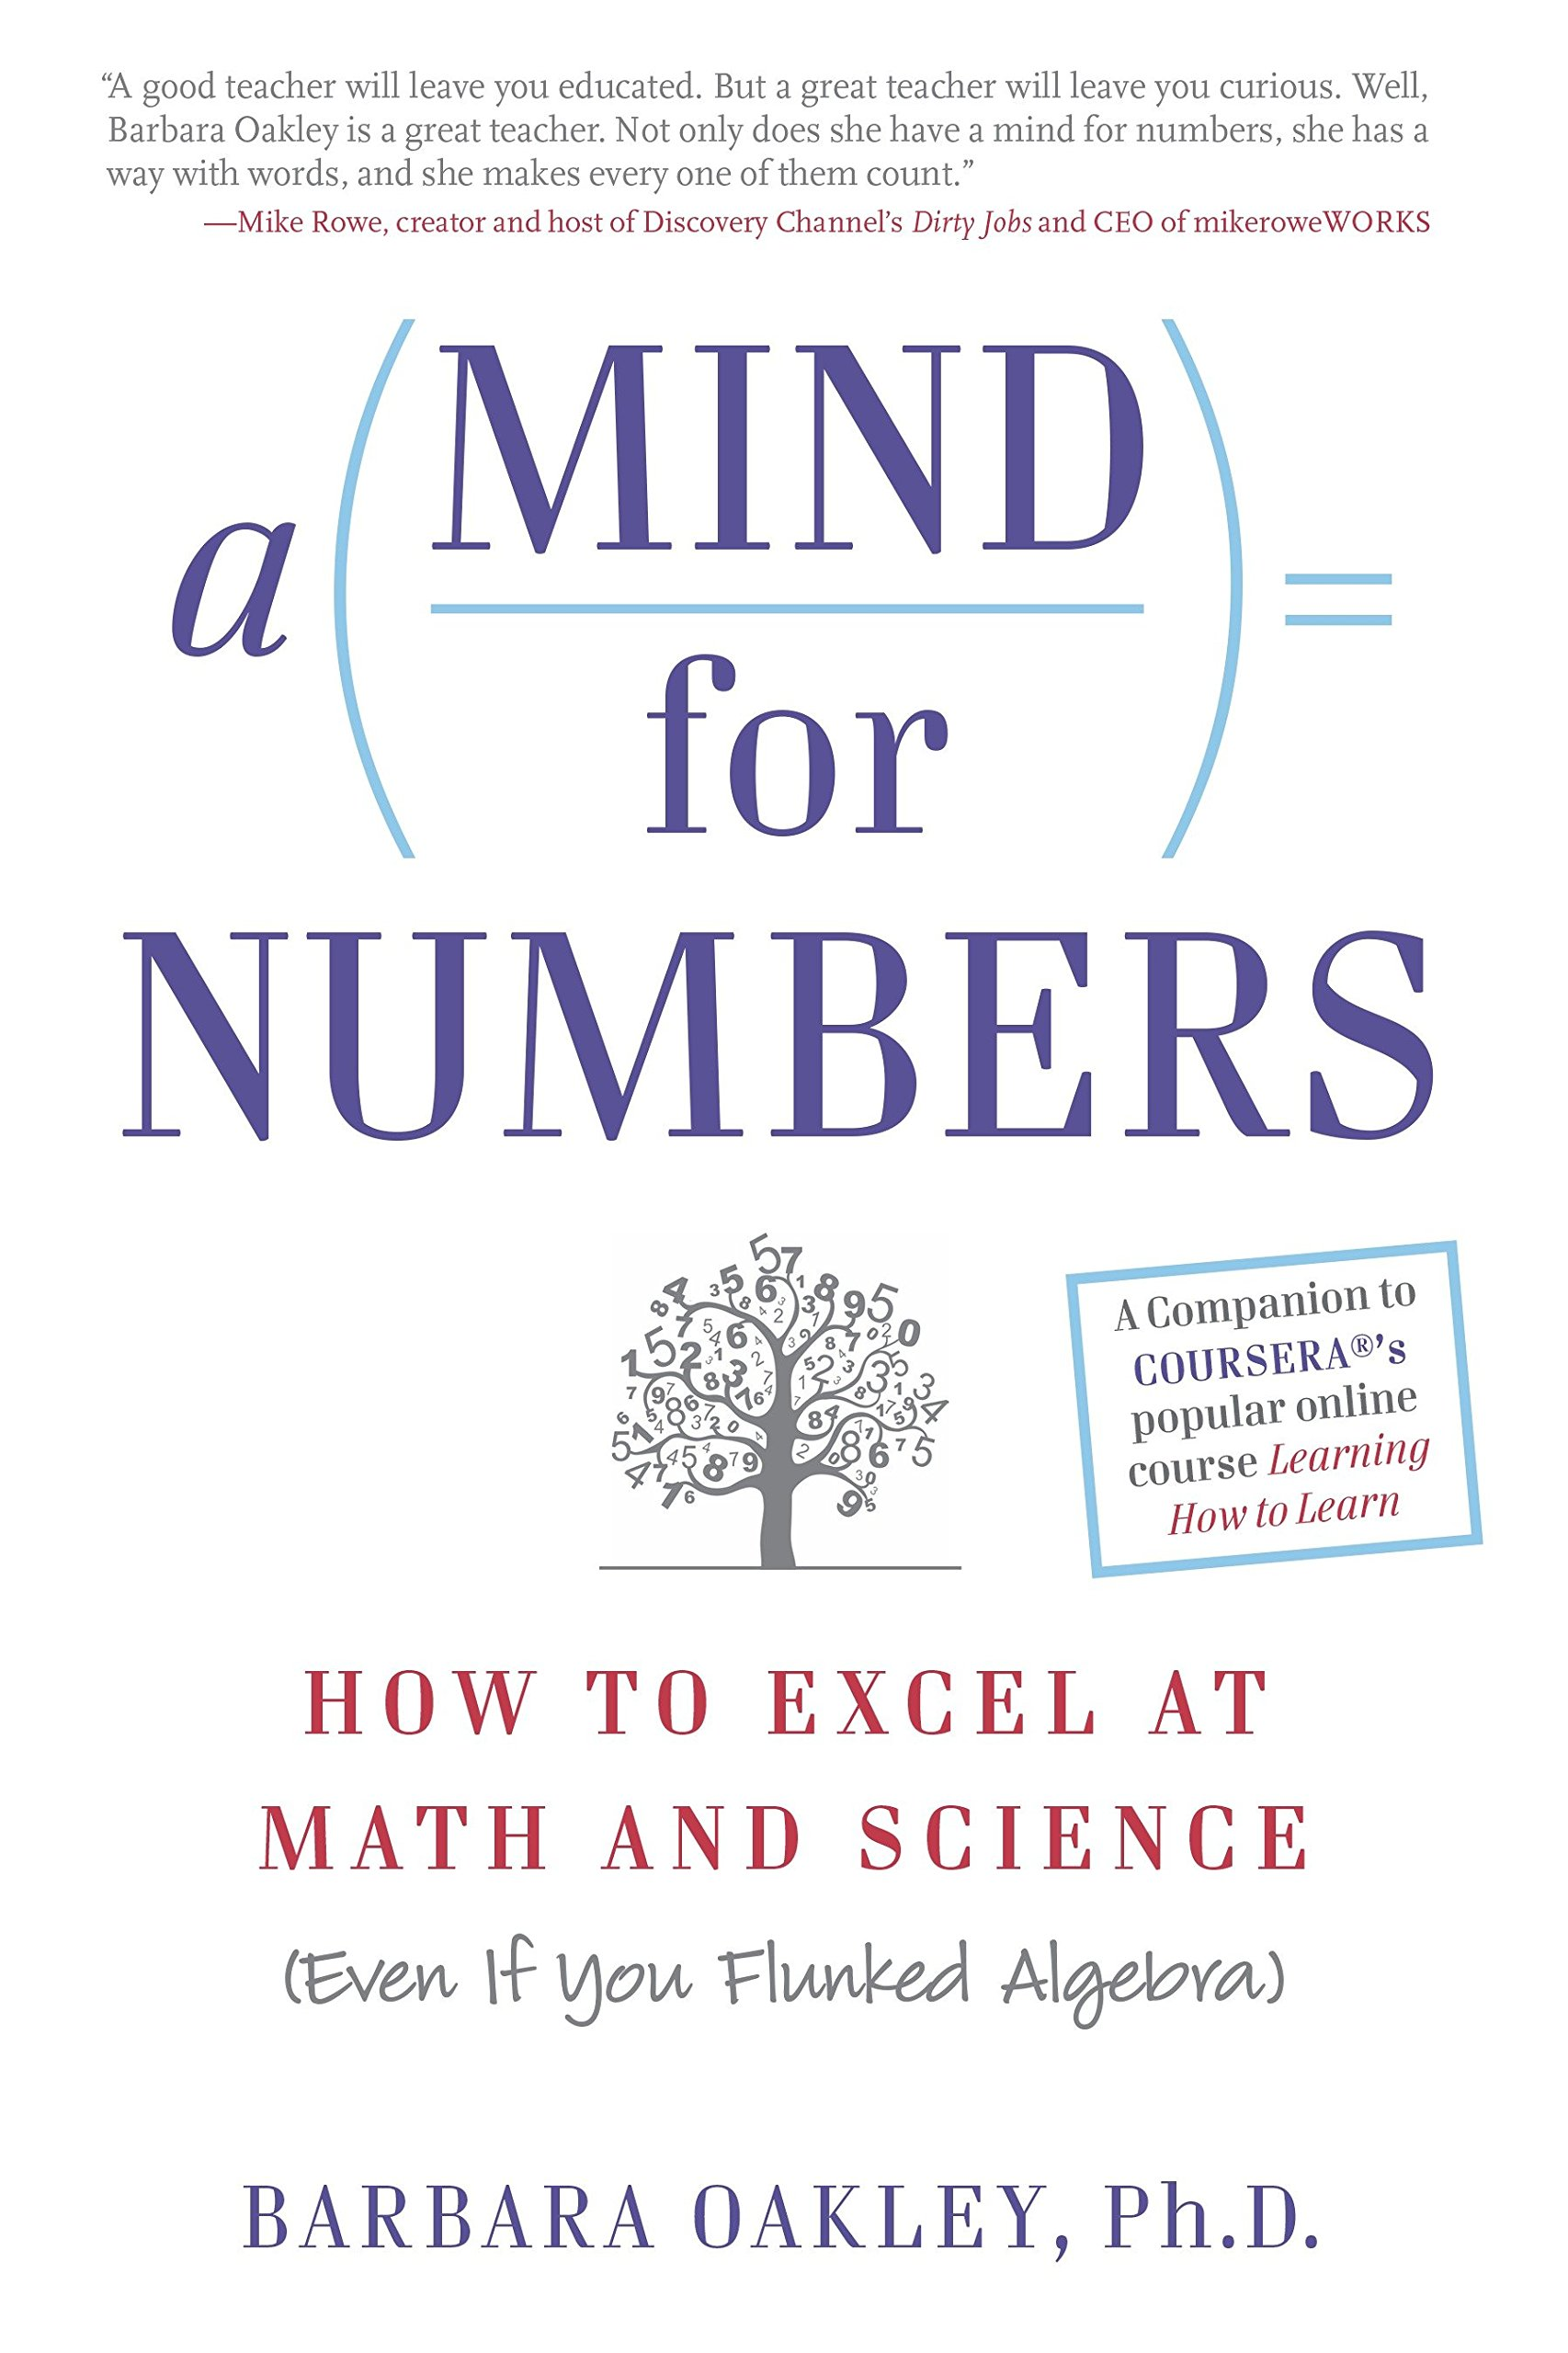 b069a16ccb4 Mind for Numbers  How to Excel at Math and Science (Even If You Flunked  Algebra) Paperback – 28 Aug 2014